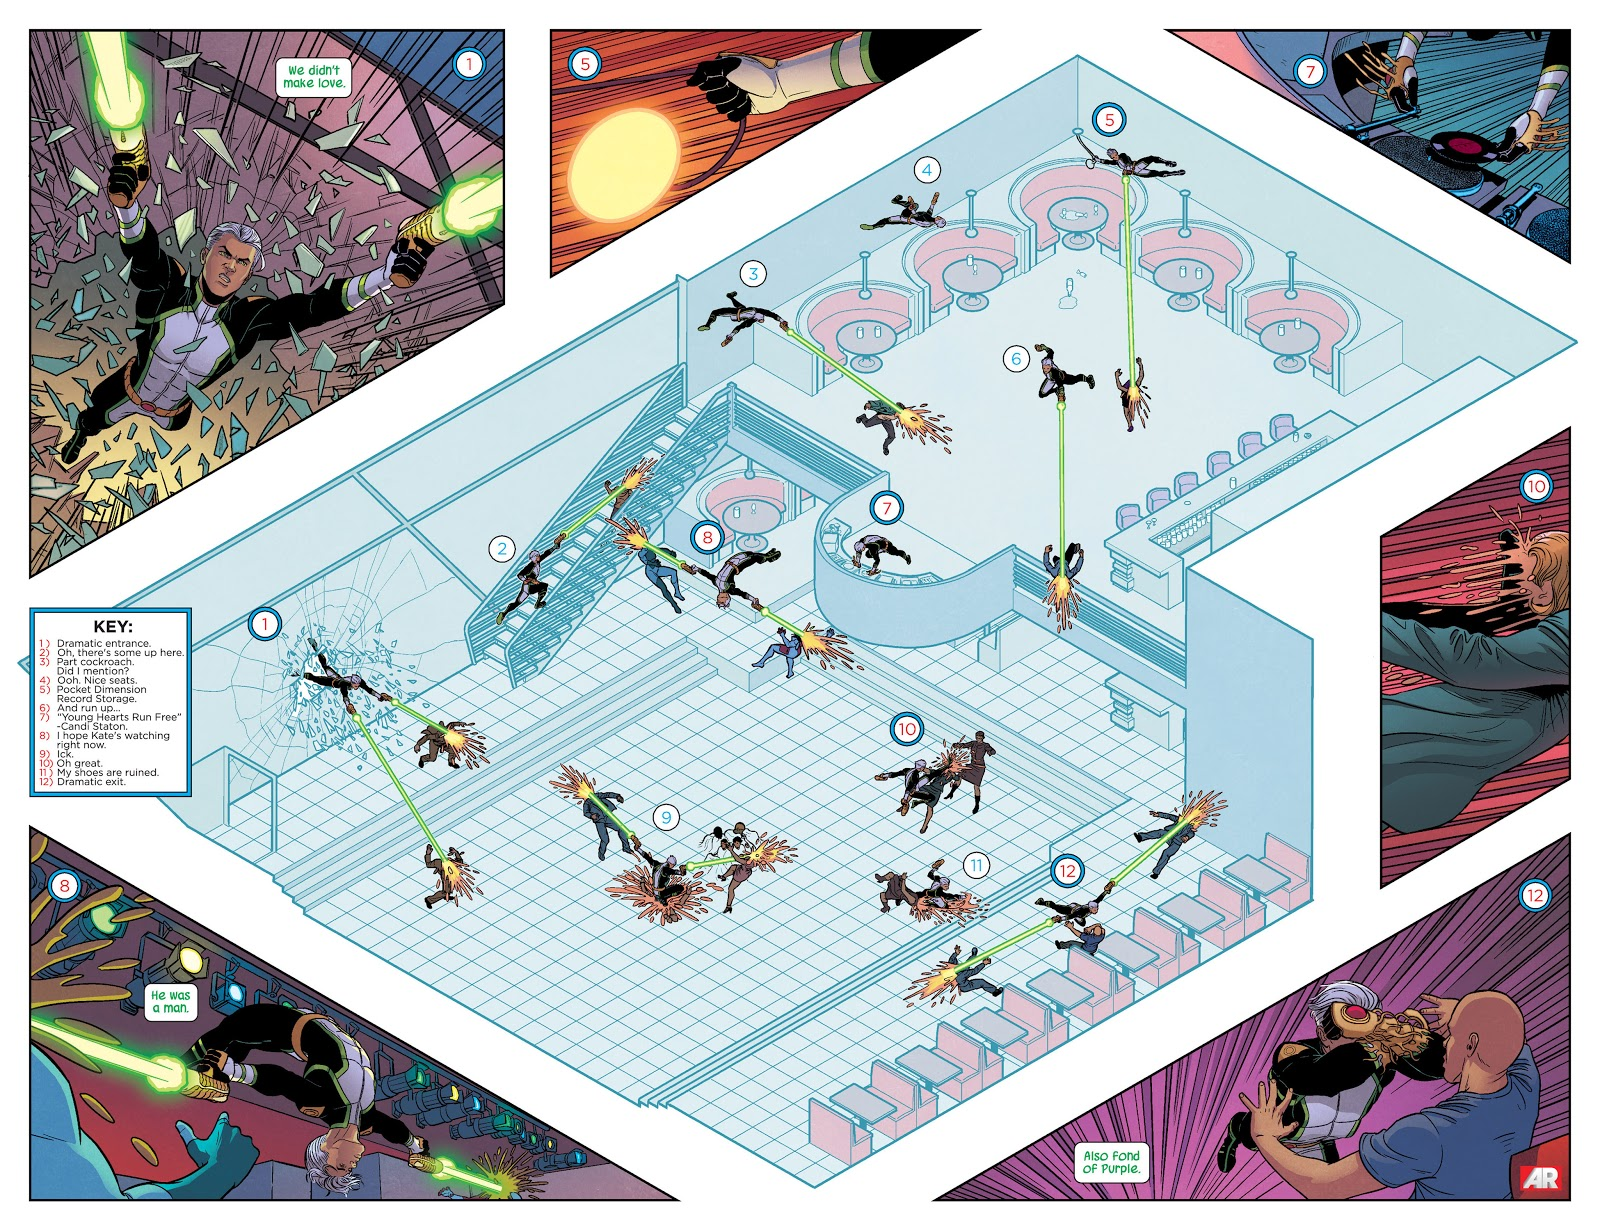 A panel from the Young Avengers comic showing, yes, a fight scene but drawn with numbered annotations similar to a flight safety instruction sheet.